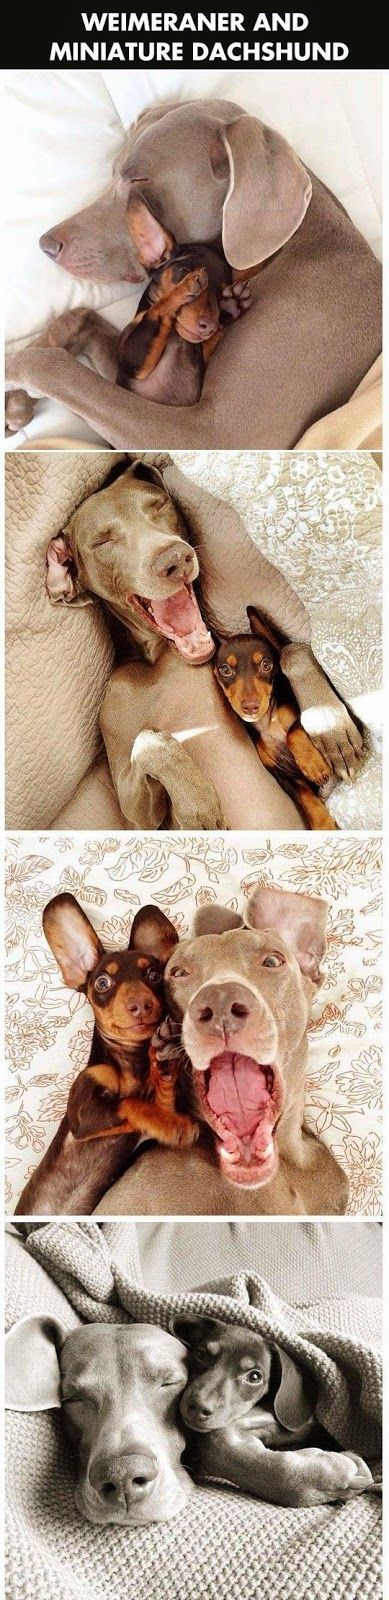 This makes me laugh 10 Fascinating Facts You Never Knew About Dogs